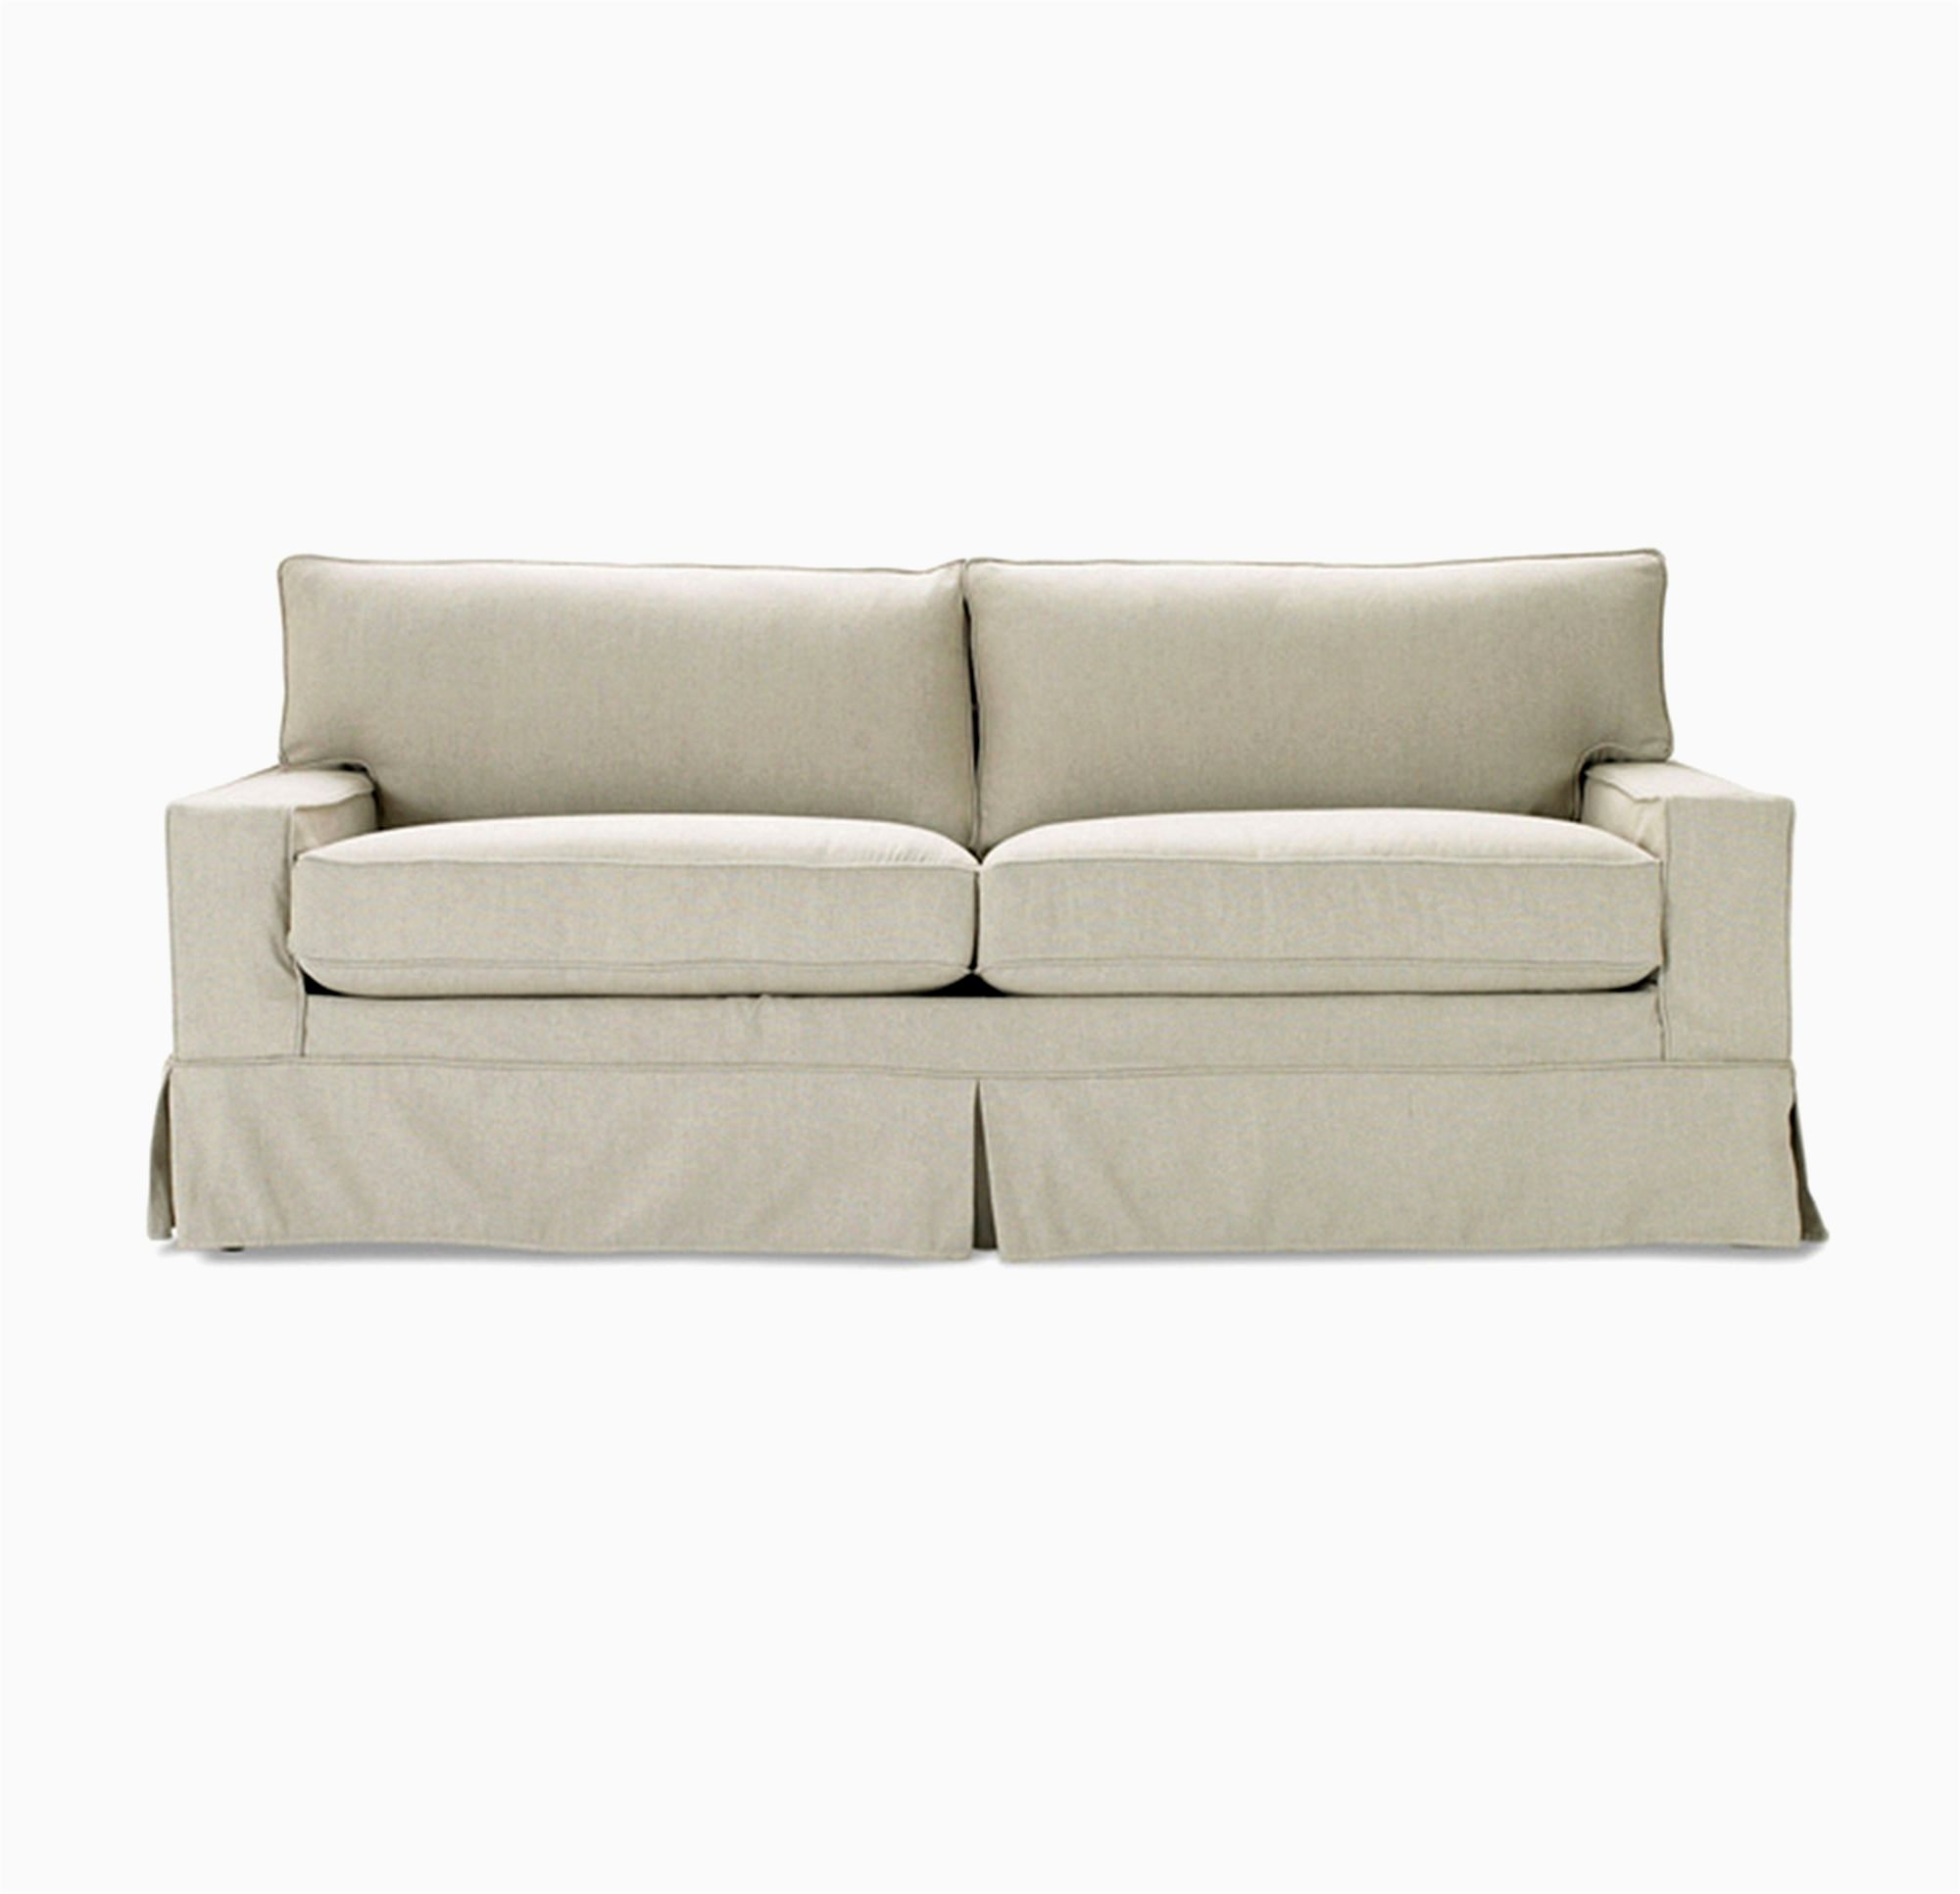 fantastic sectional sofa bed photograph-Best Sectional sofa Bed Design